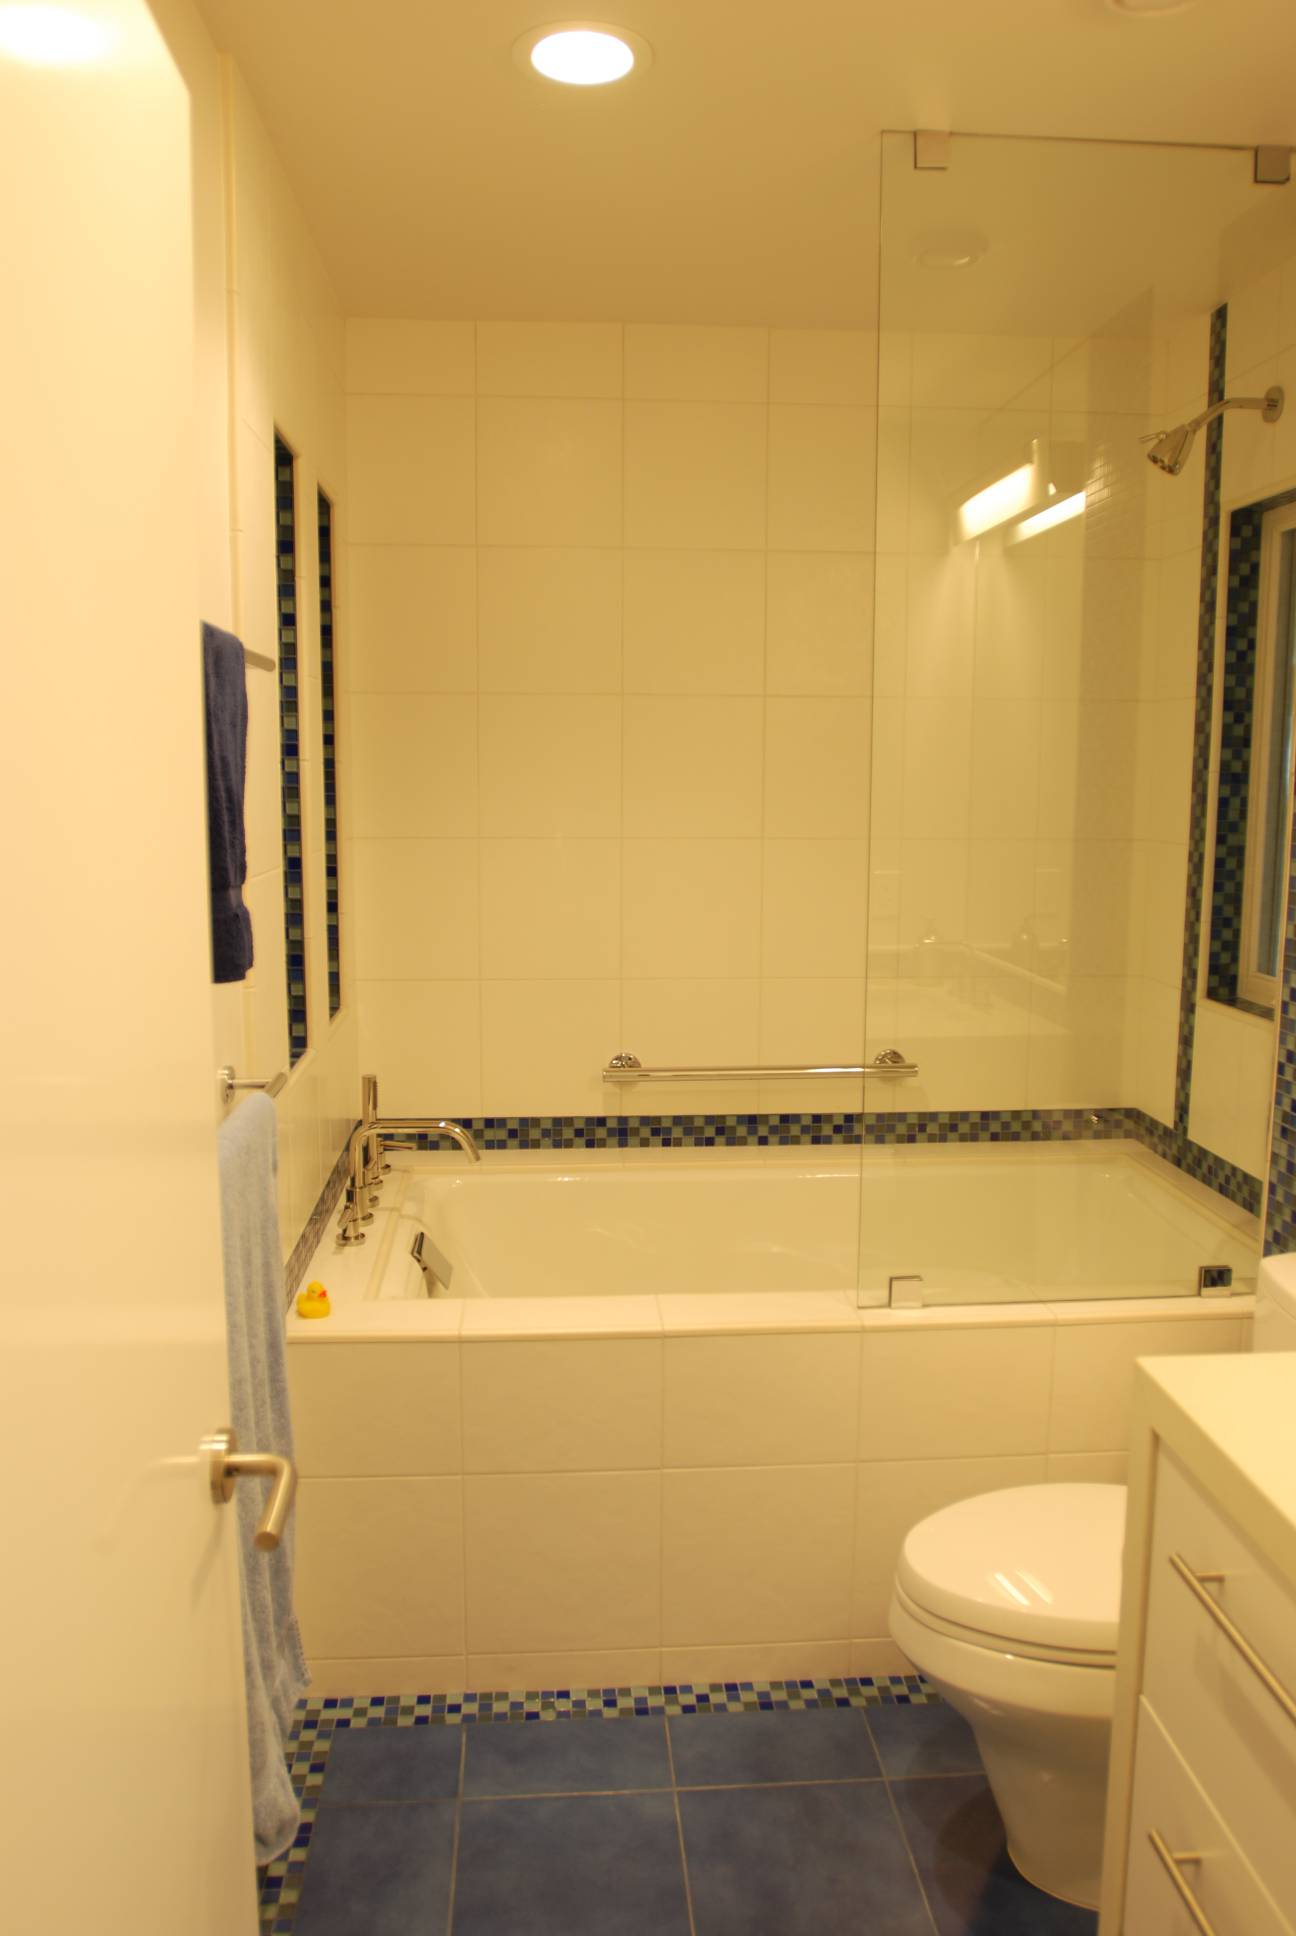 White Tile Bathroom, best Architect design, interior design work, Menlo Park